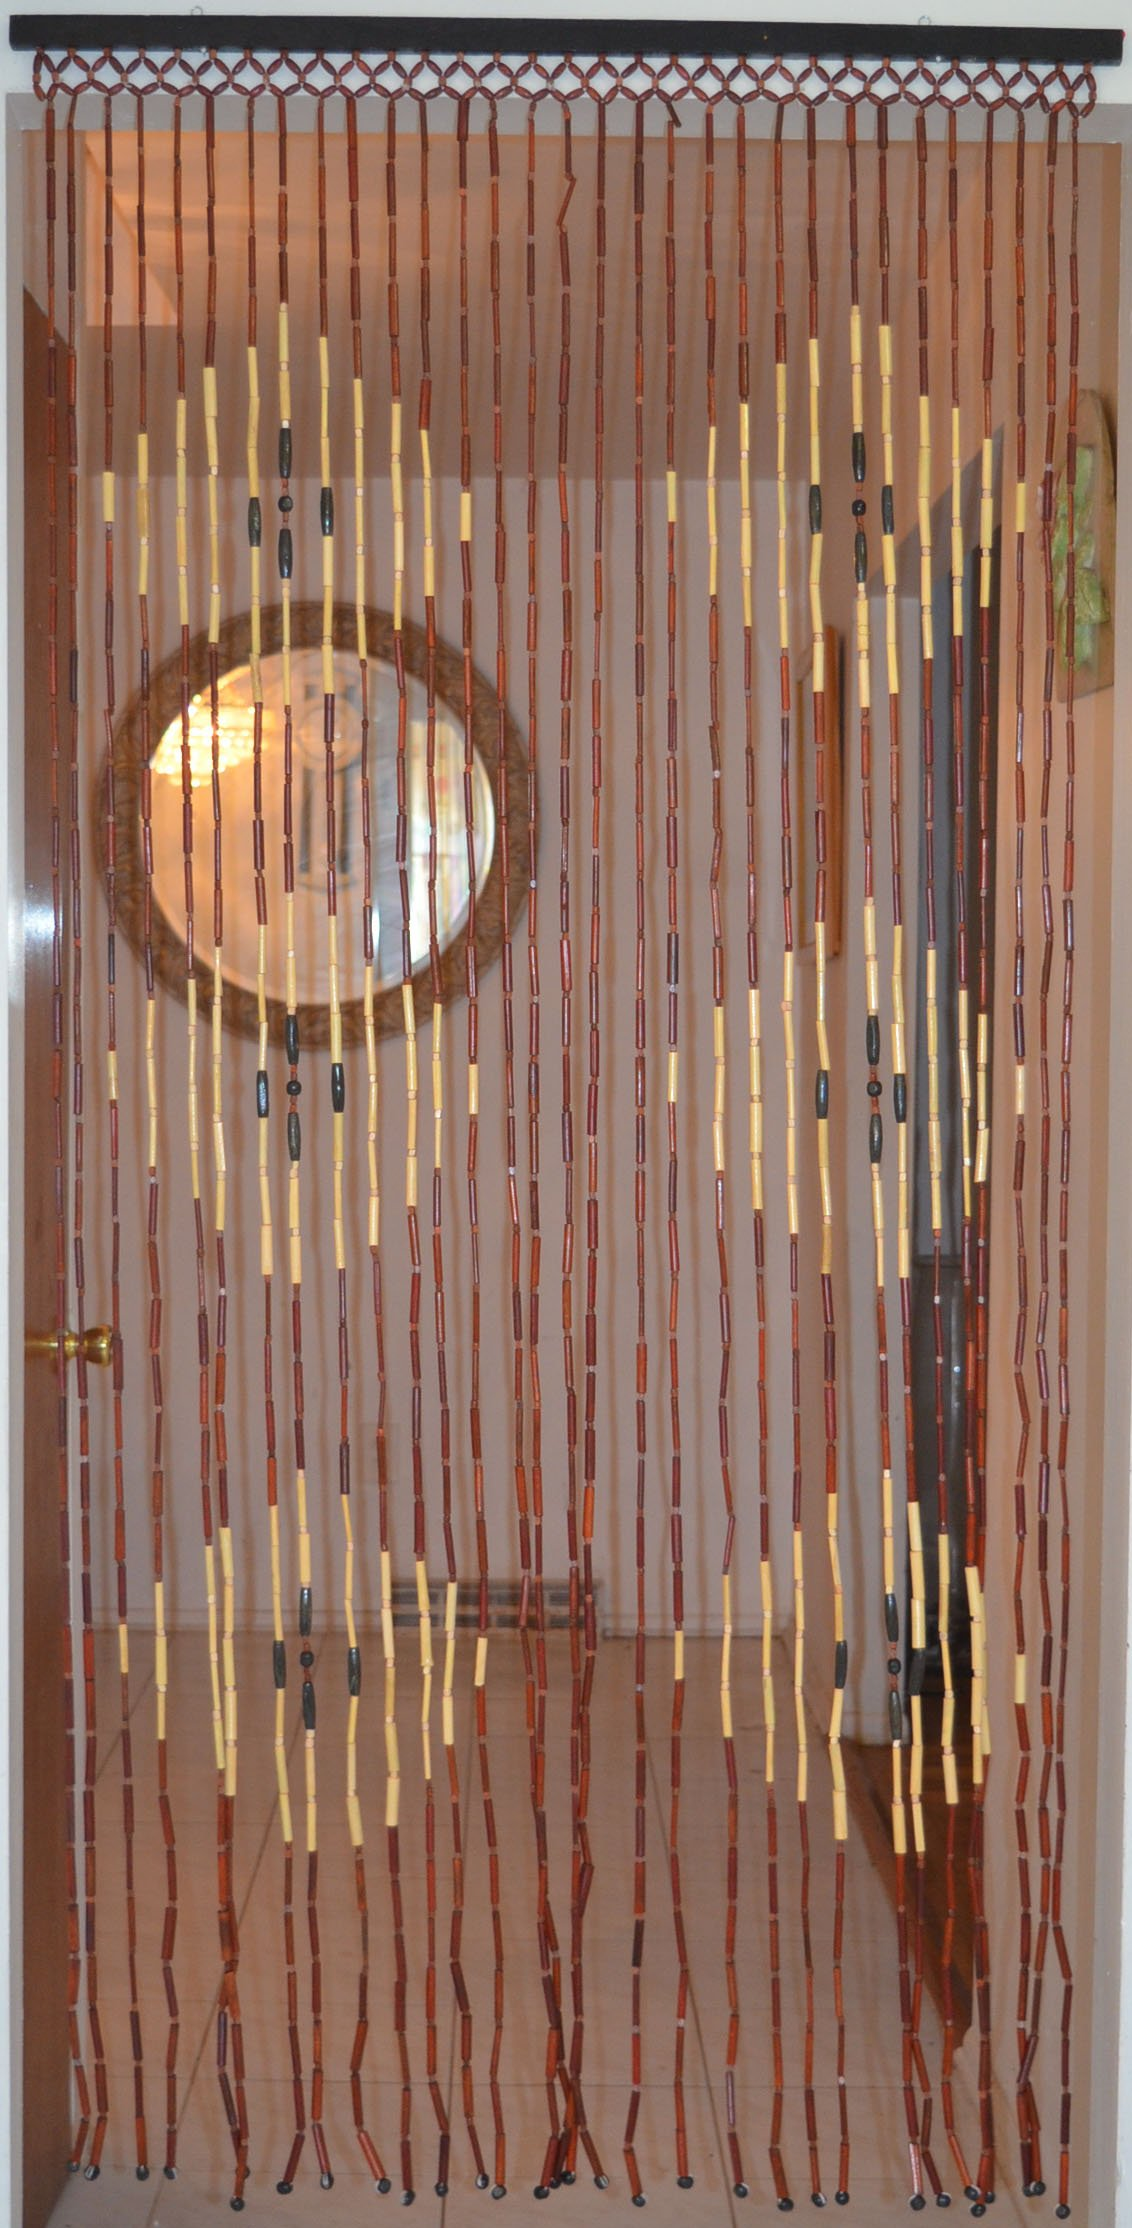 Natural Bamboo & Wood Beaded Curtain, Diamond Pattern , 35.43'' W X 71'' H # 69-907 by H2H (Image #3)